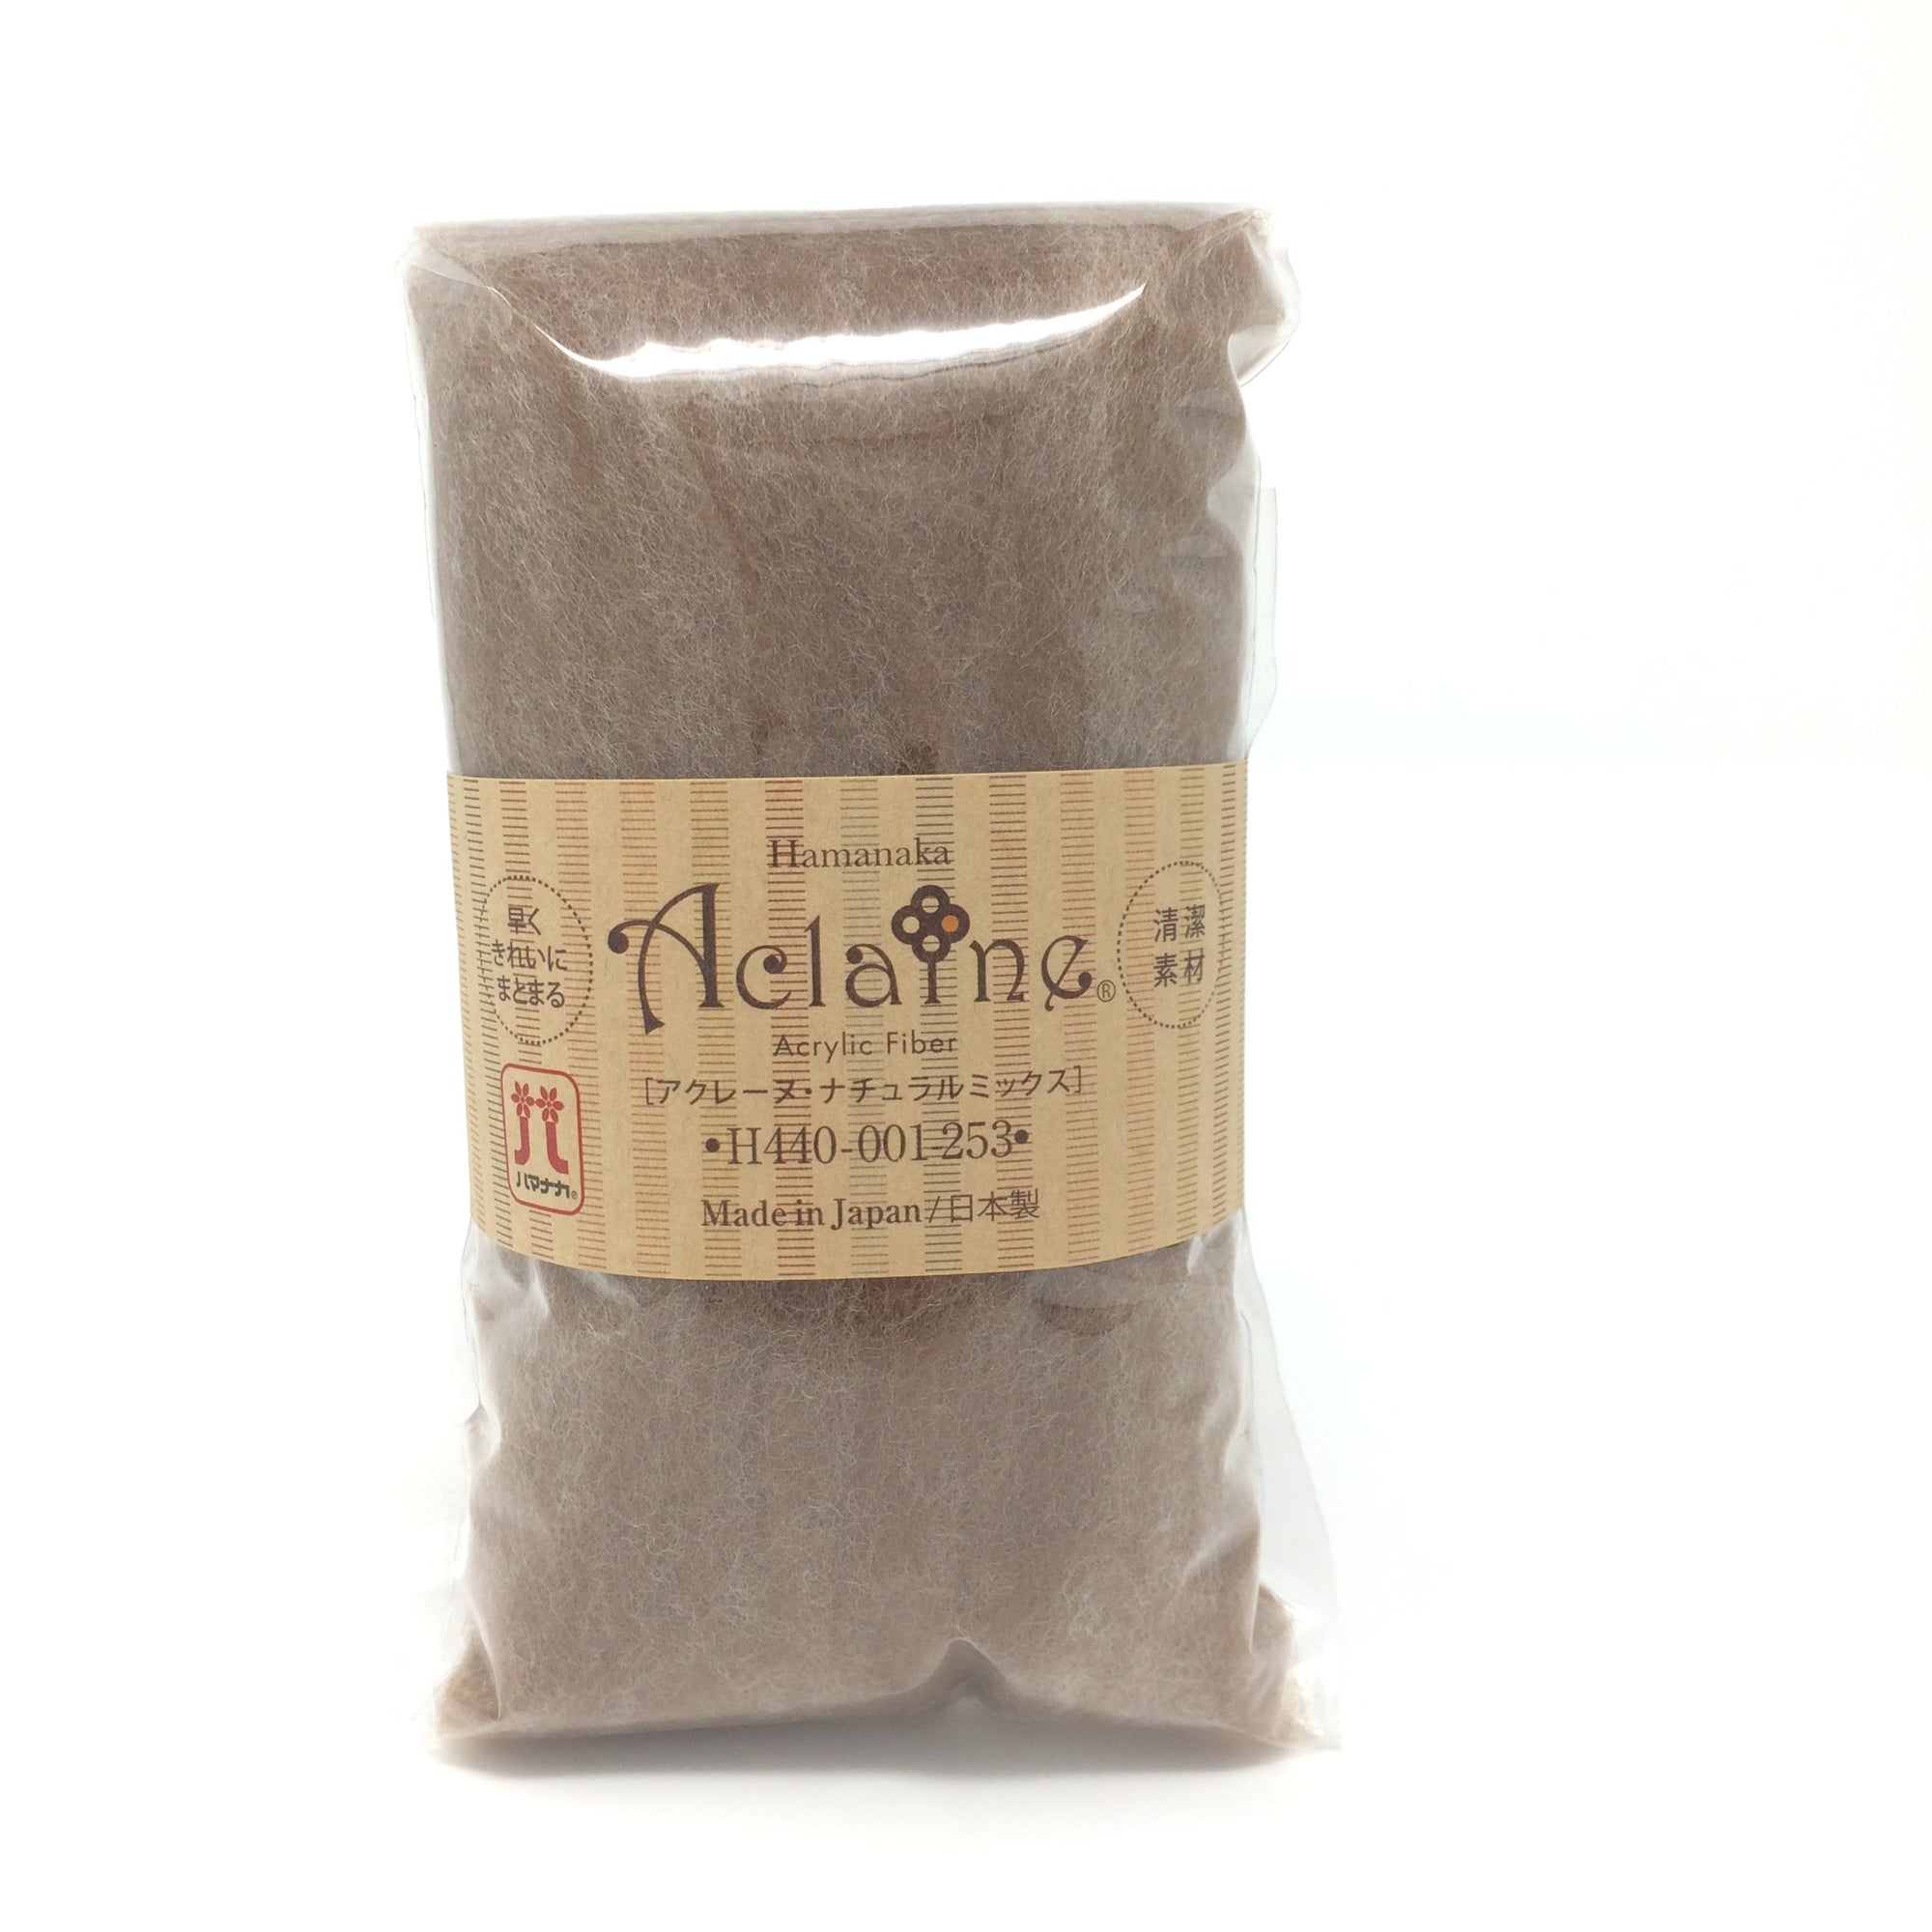 "Japanese Hamanaka Aclaine ""Natural Mix"" Acrylic Fibre for Needle Felting. 15g pack - Natural Dark Brown"